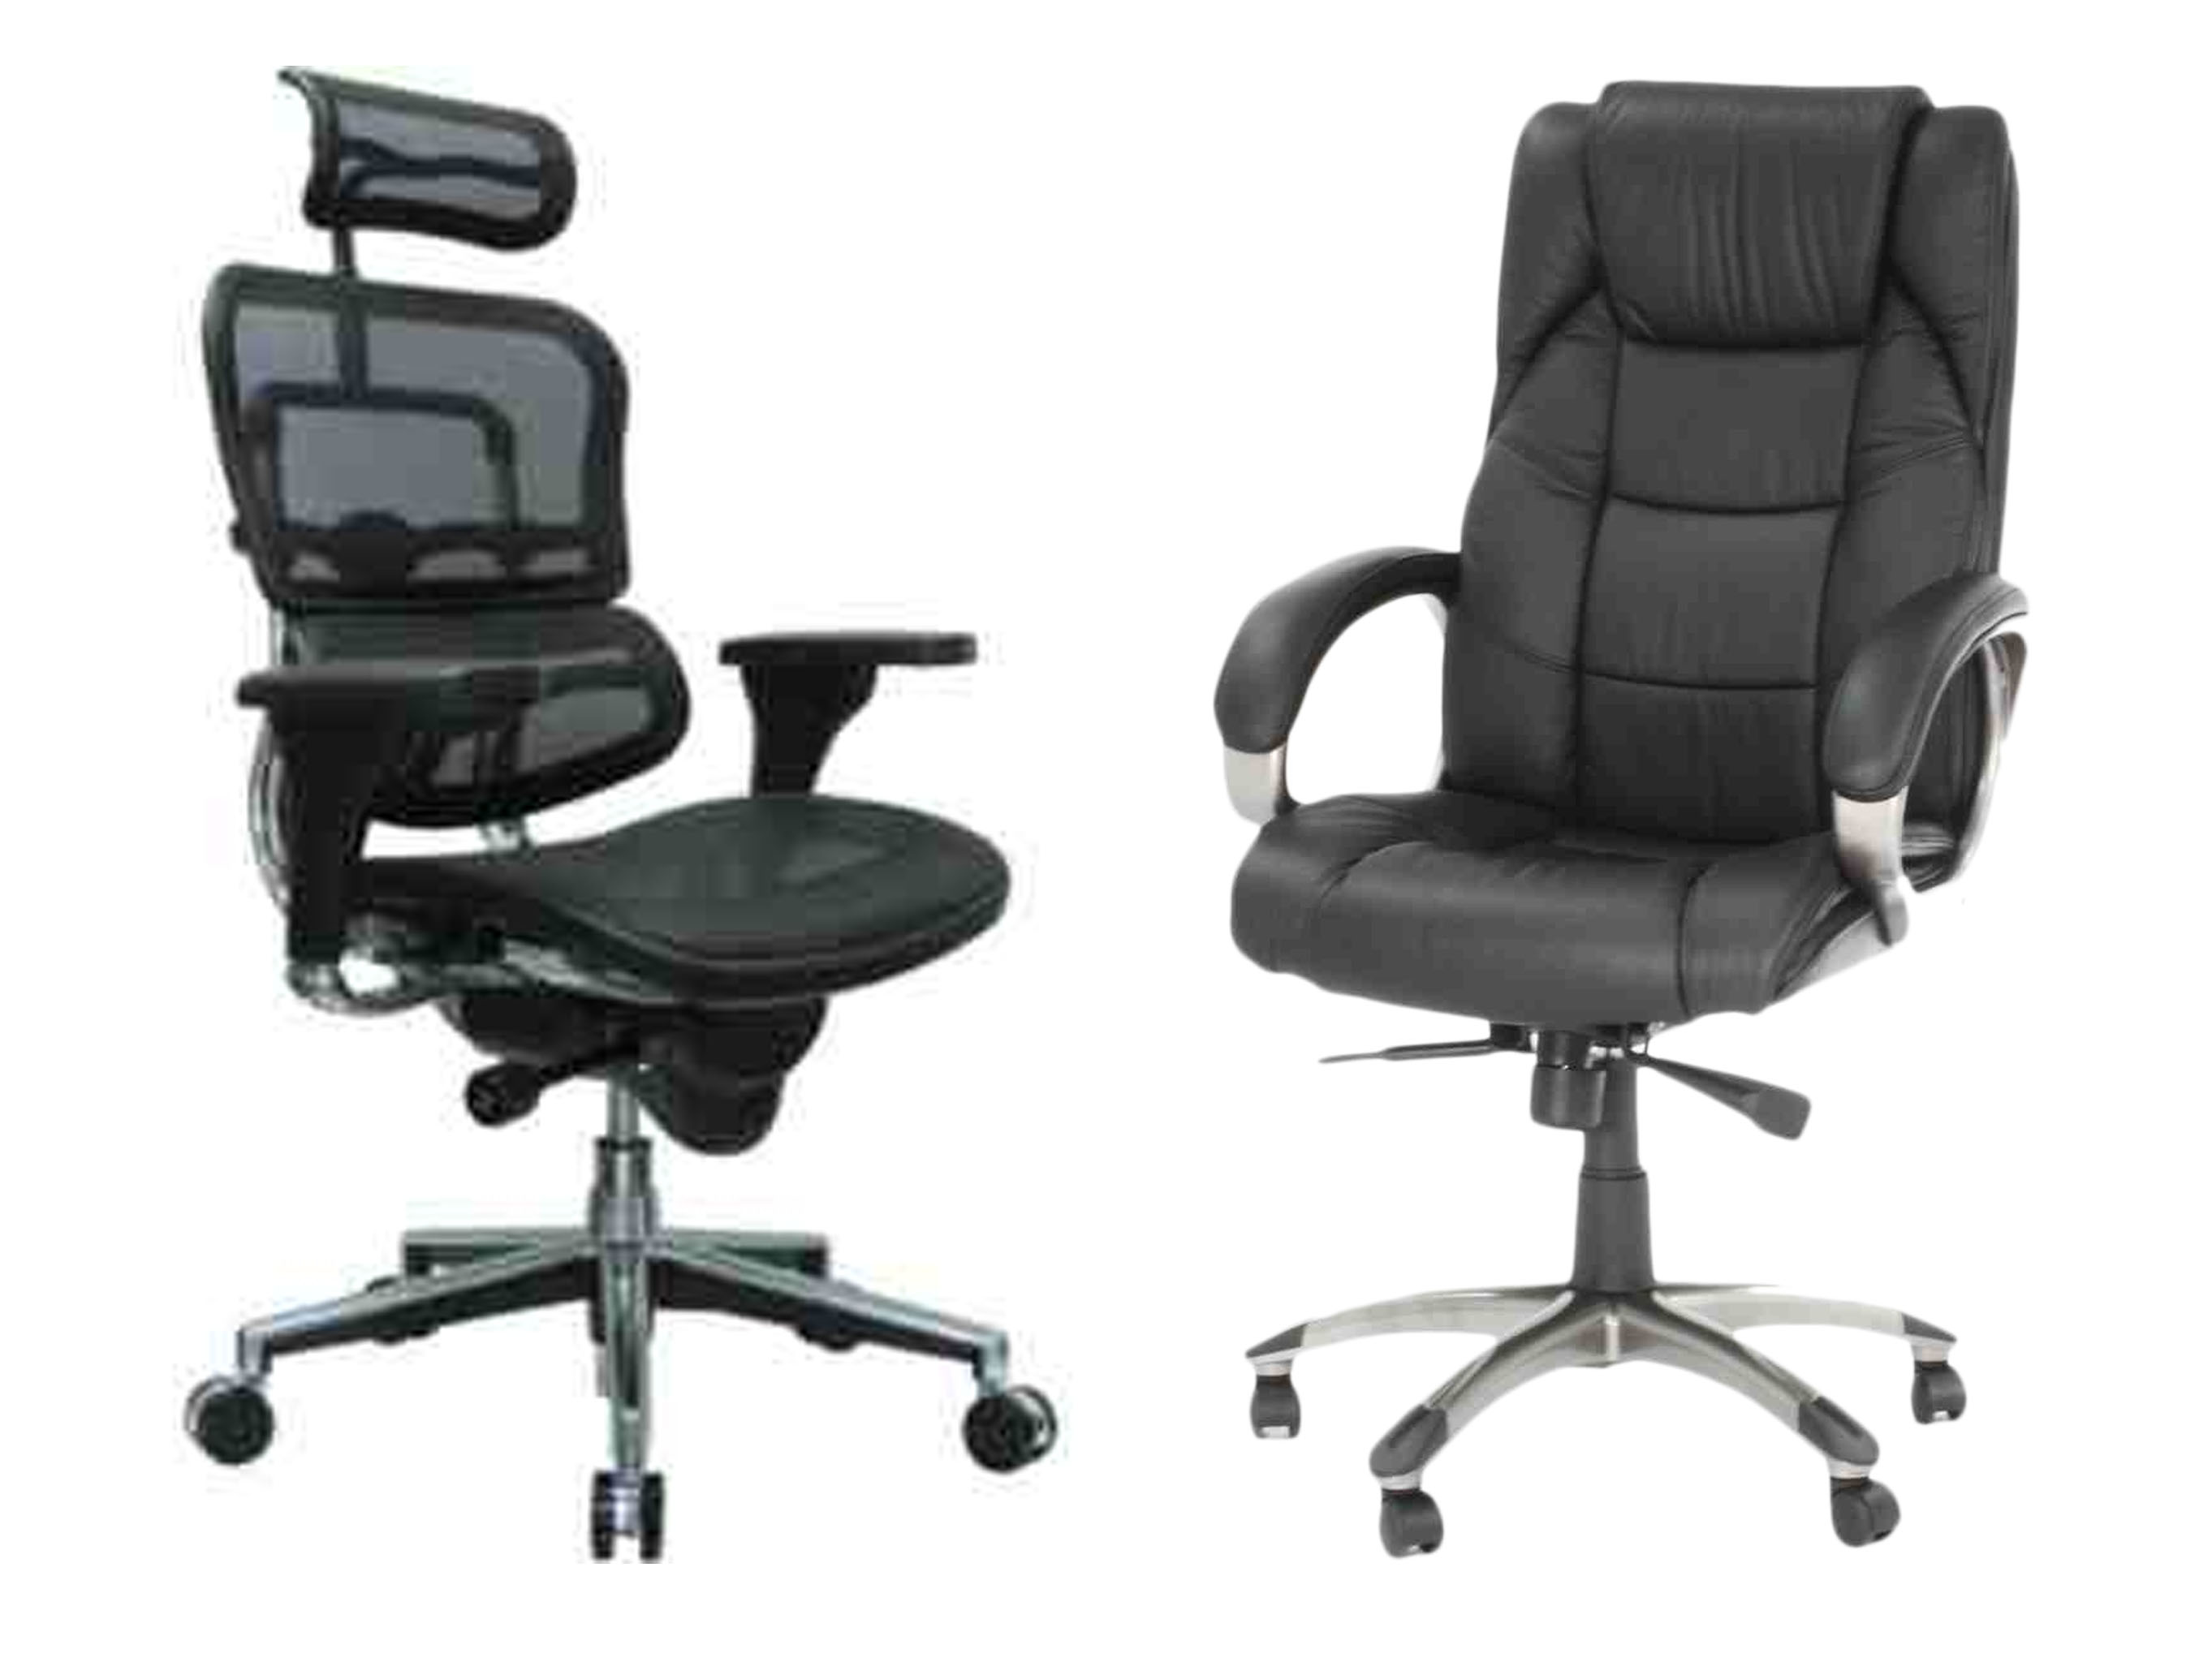 office chair vs stool rio gear awesome leather chairs rtty1